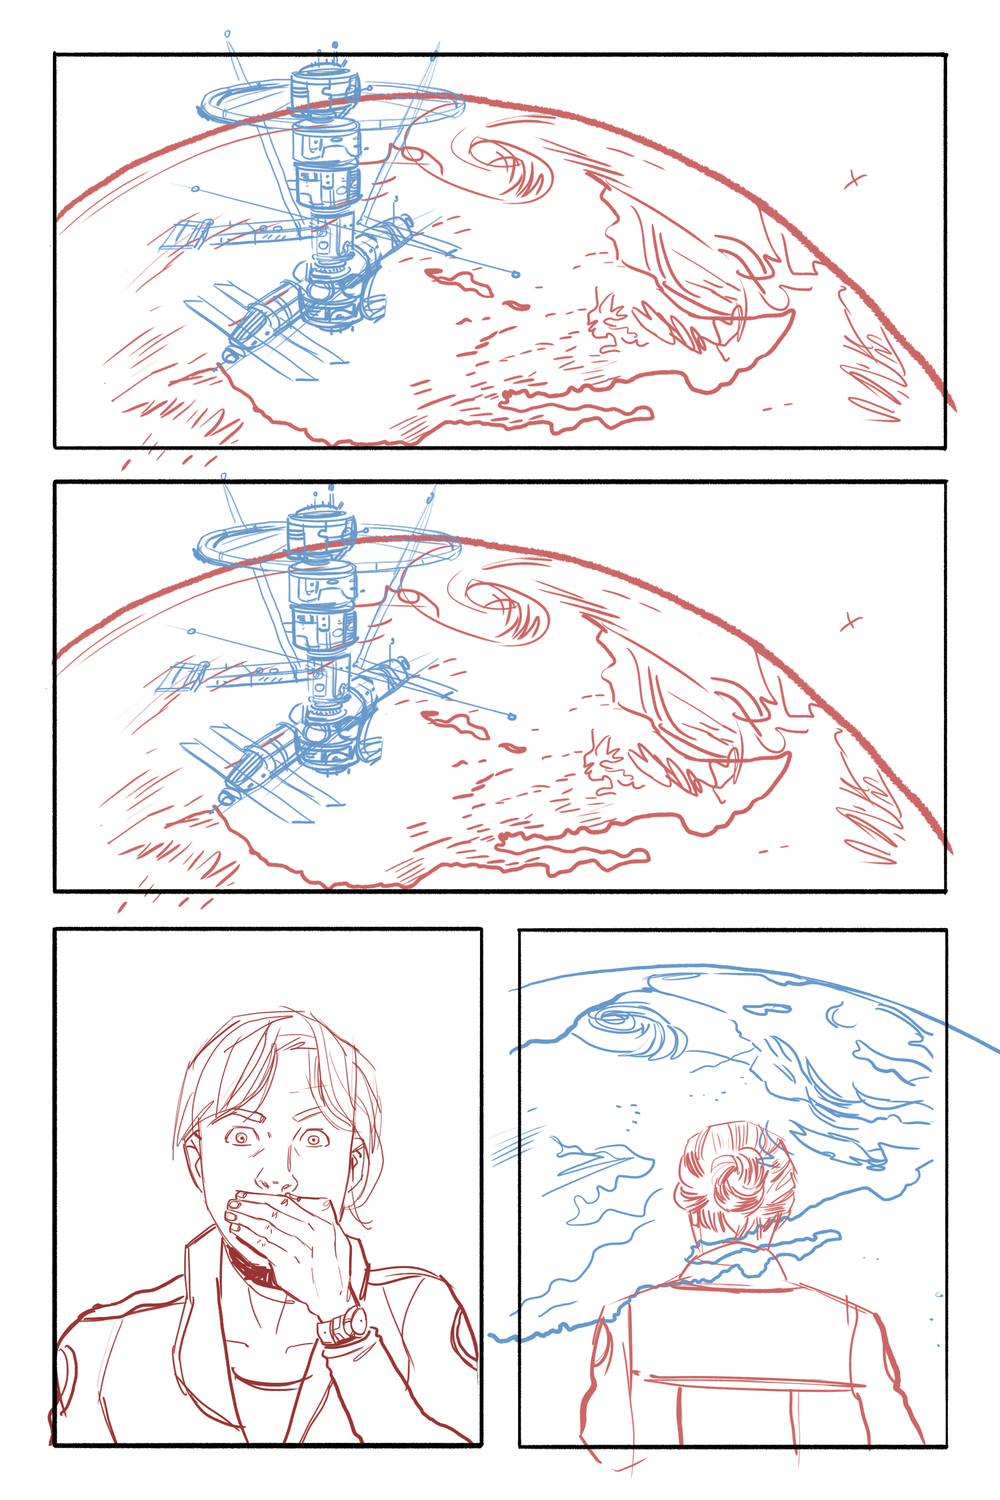 More layouts. I think this would have been a beautiful page.